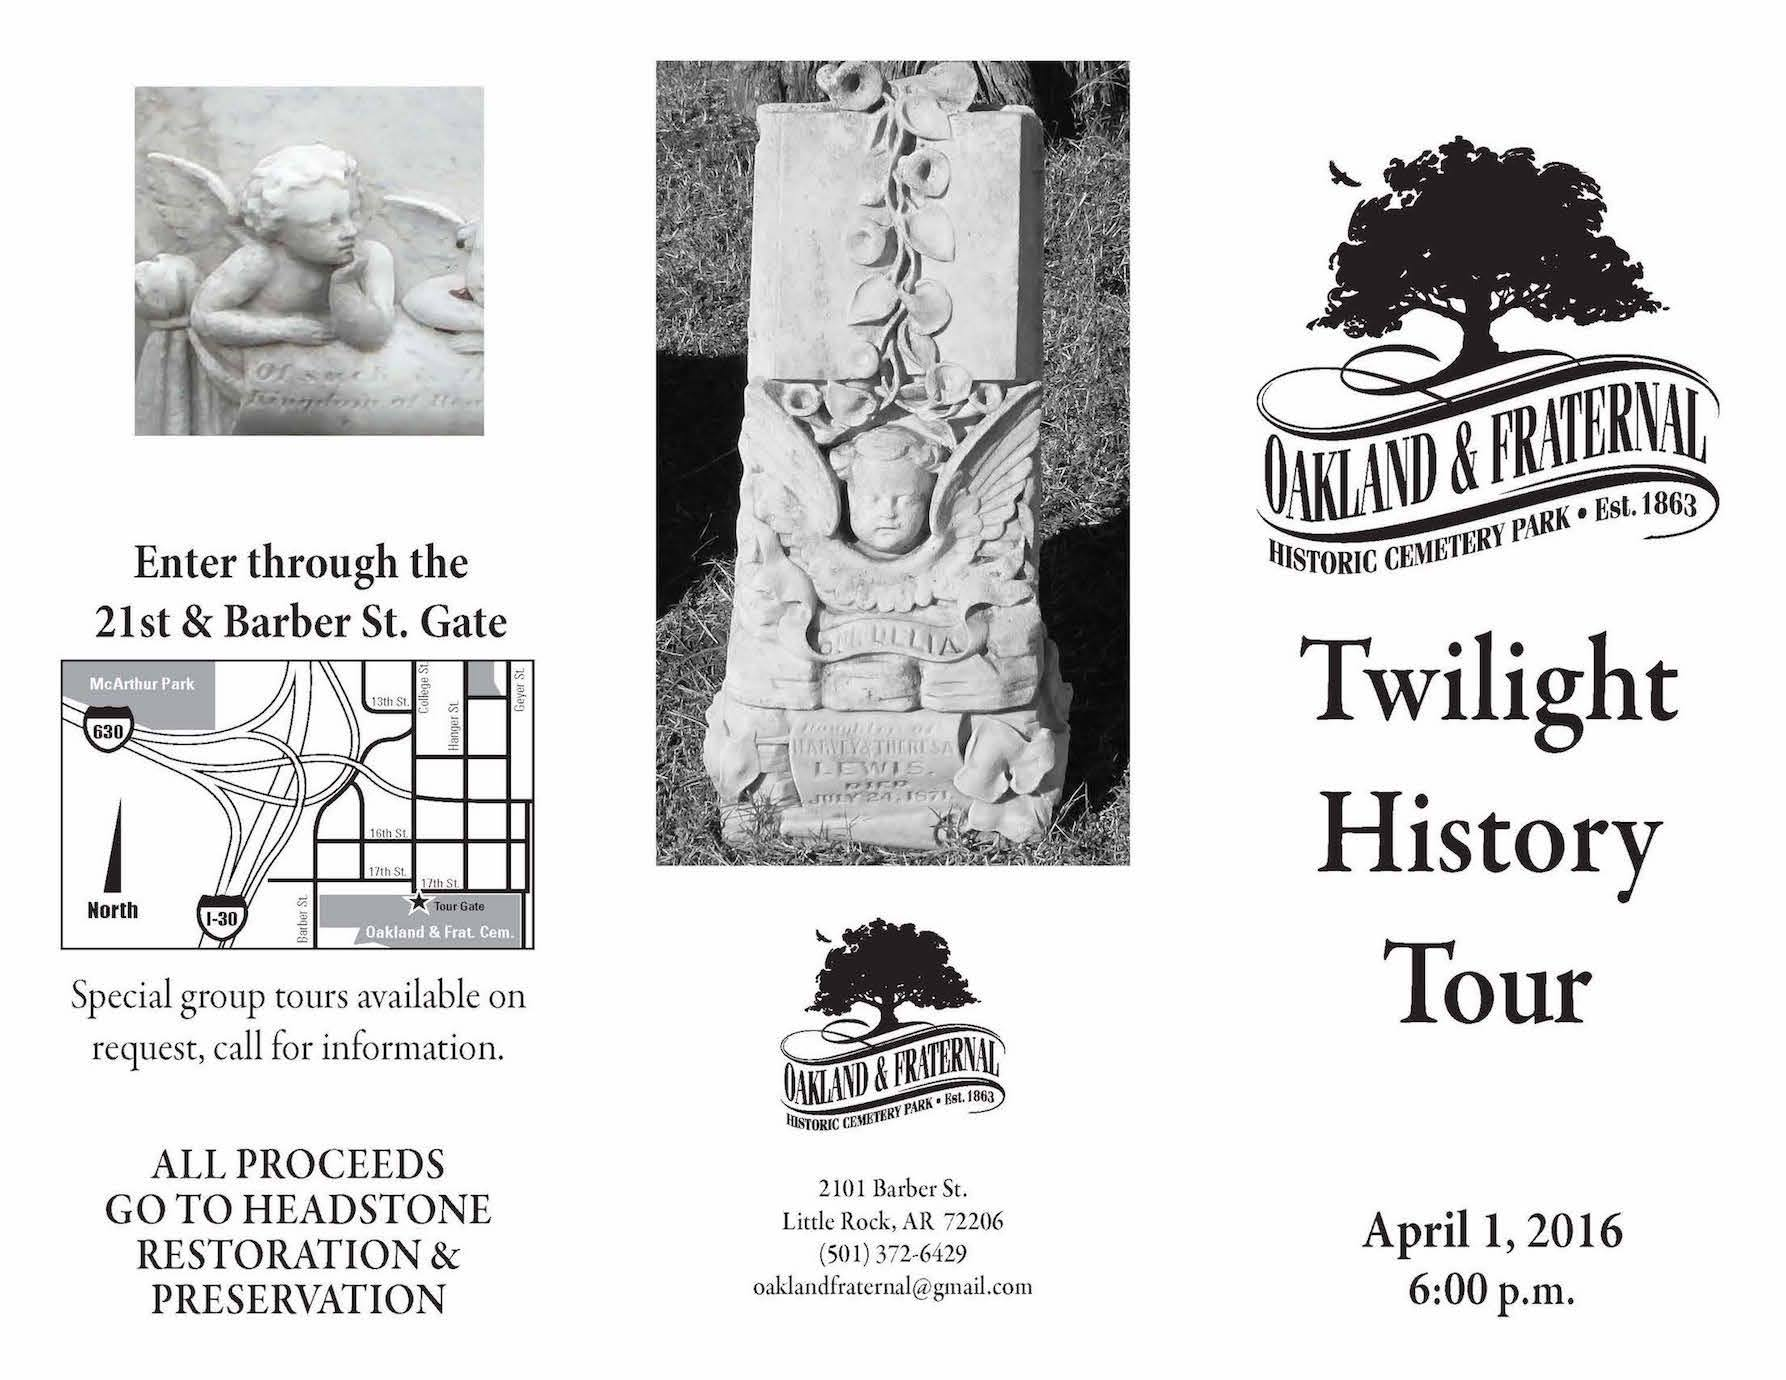 Brochure for the Twilight History Tour on April 1, 2016, page one.  Courtesy of Oaklawn & Fraternal Historic cemetery park.